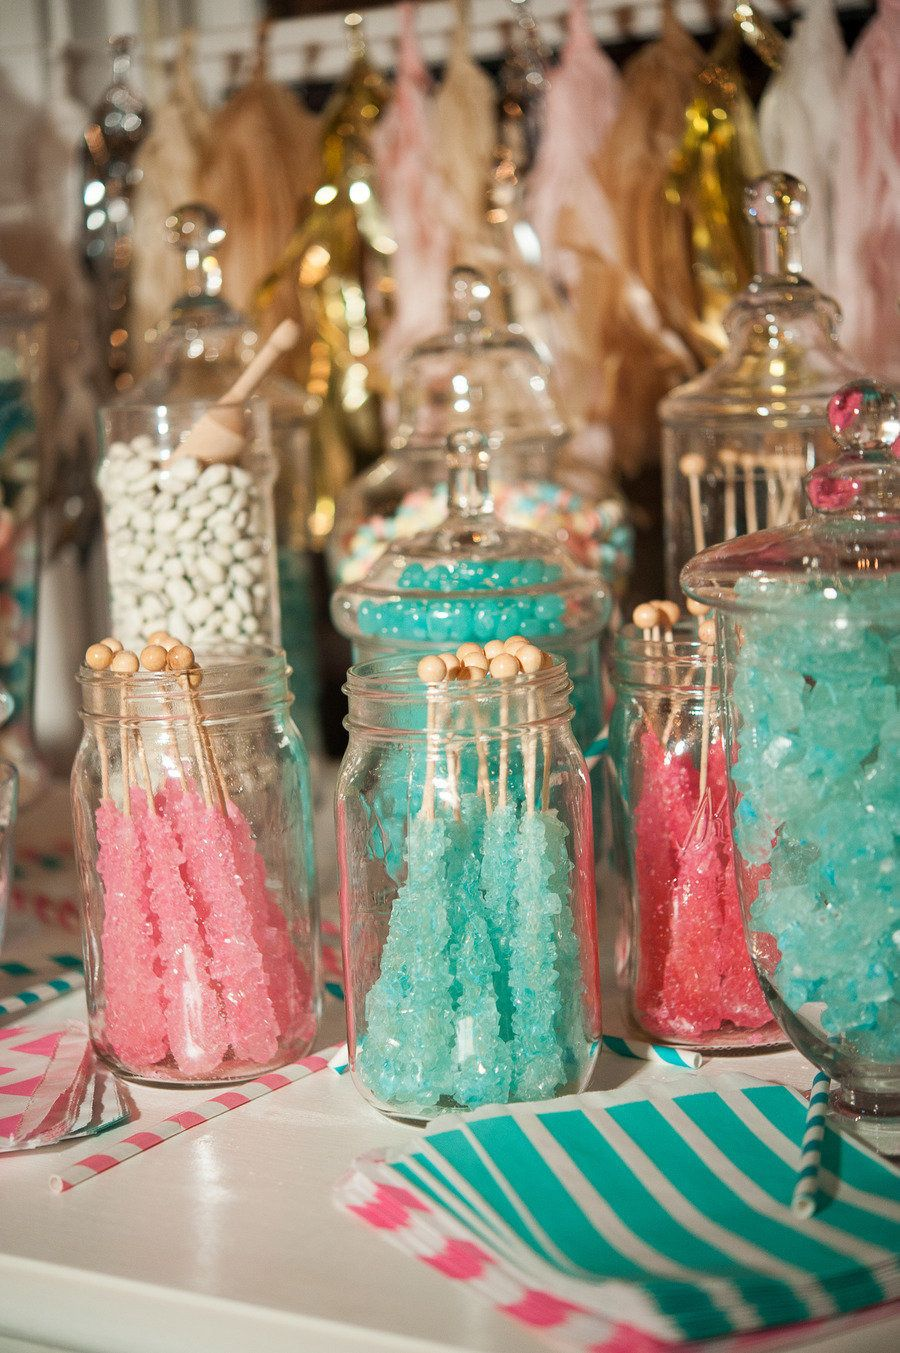 45 Chic and Creative Wedding Dessert Ideas